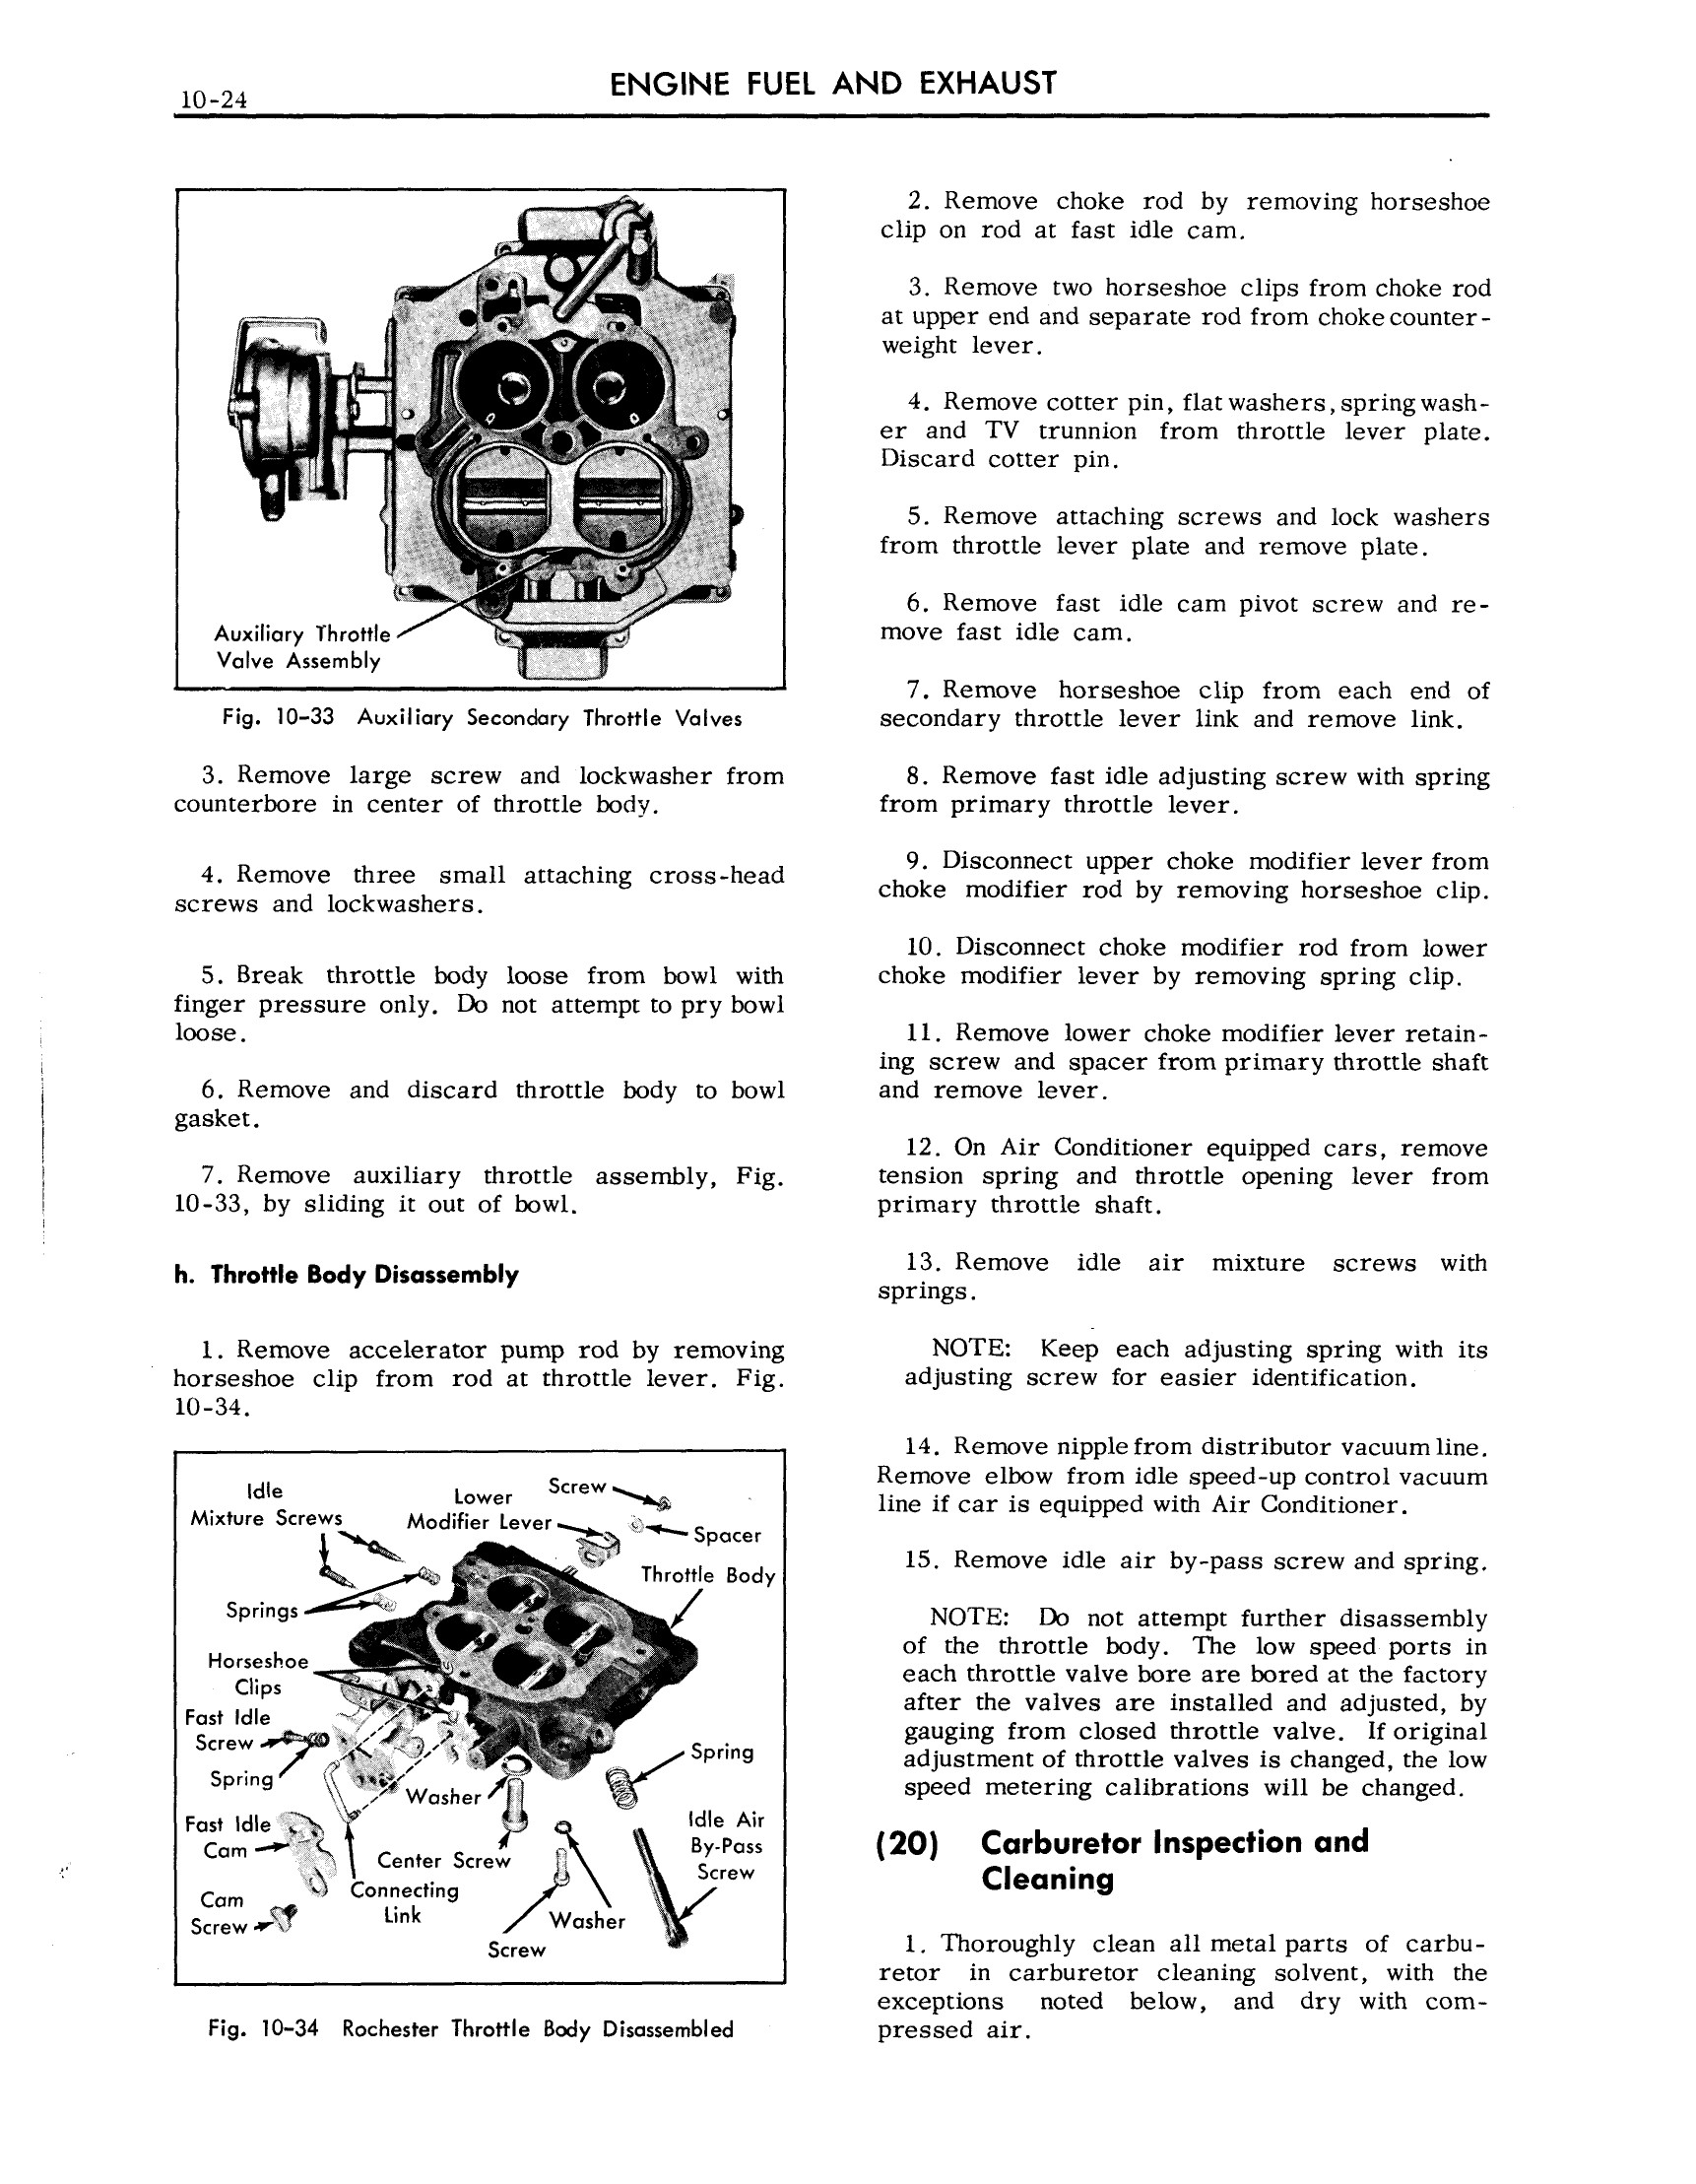 1957 Cadillac Shop Manual- Engine Fuel and Exhaust Page 24